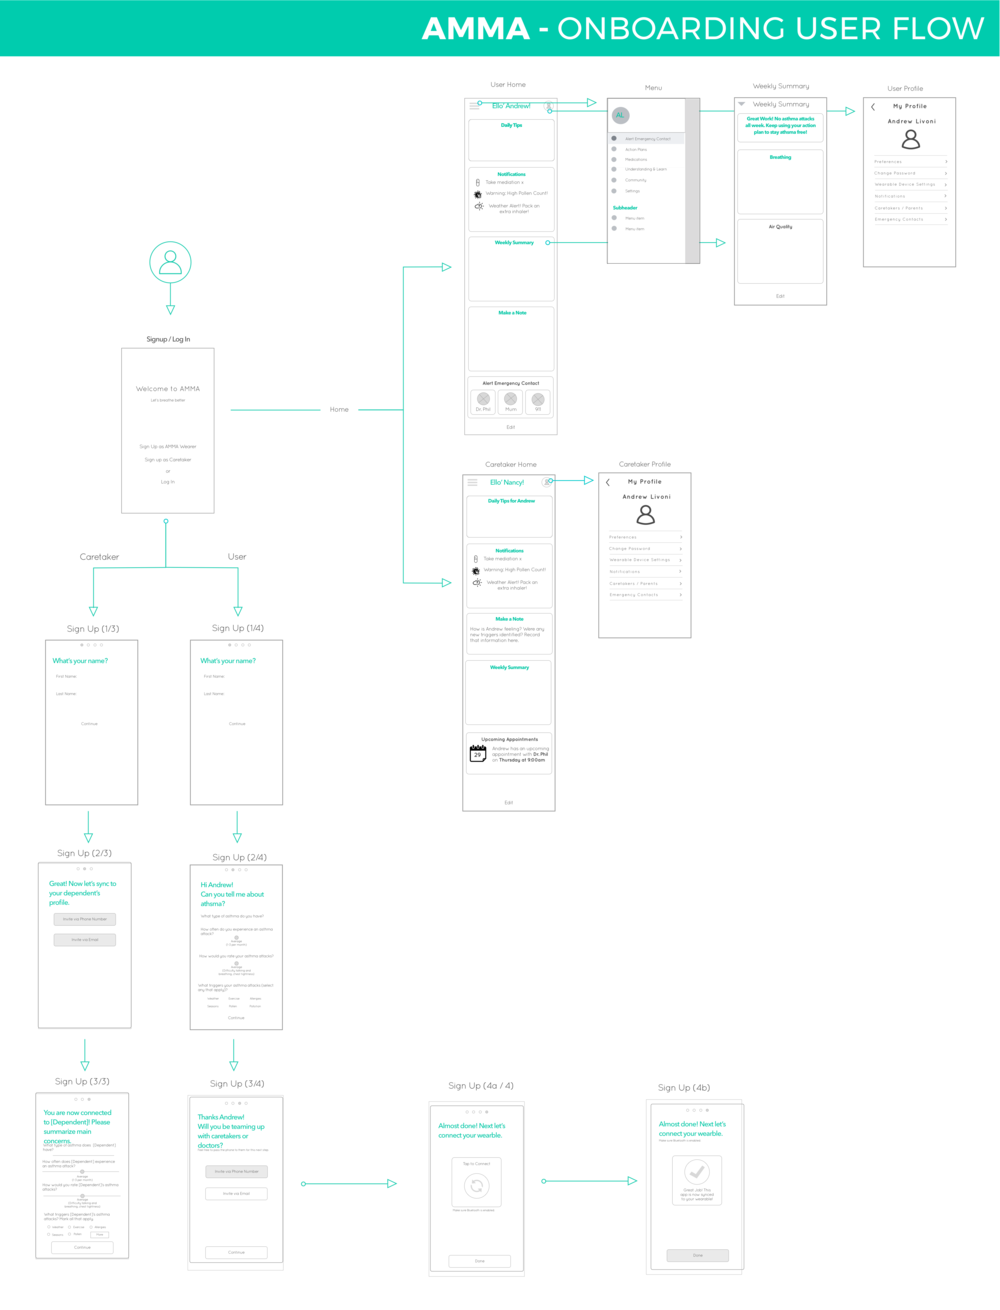 Onboarding User Flow@1x22.png